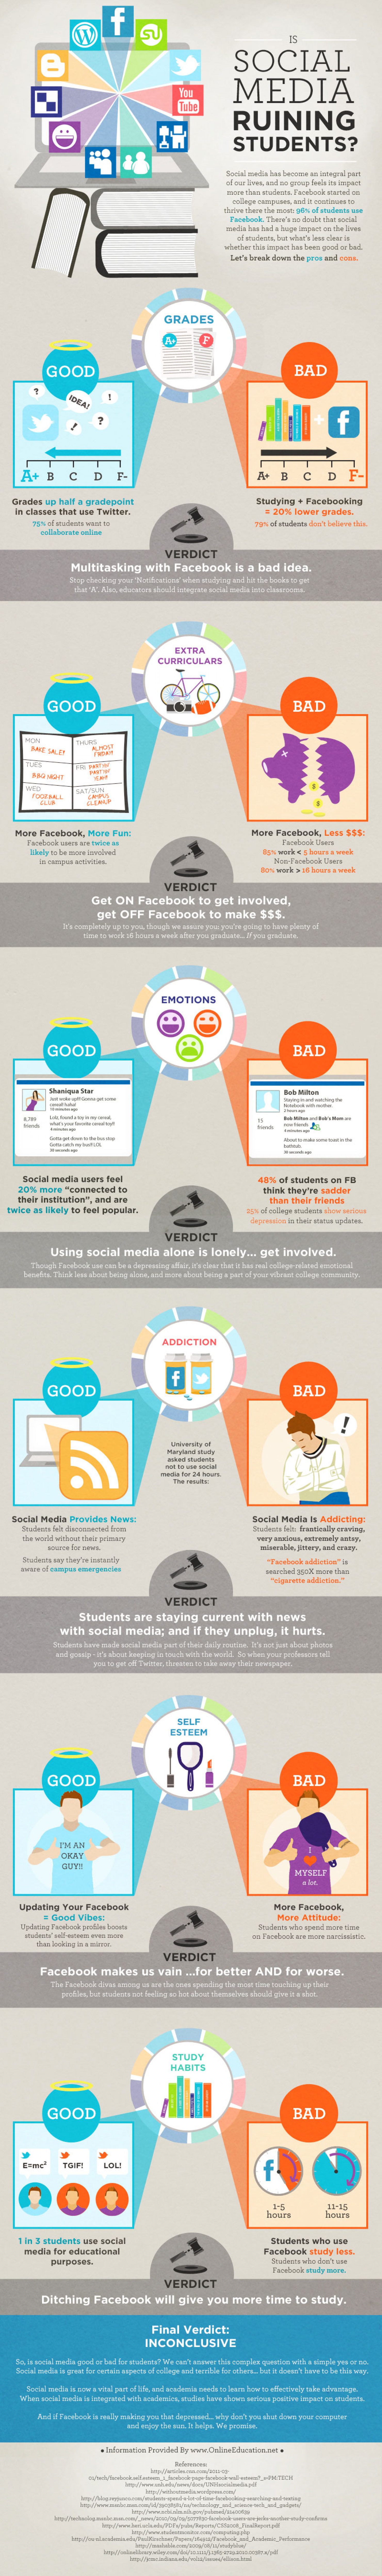 Is Social Media Ruining Students? Infographic